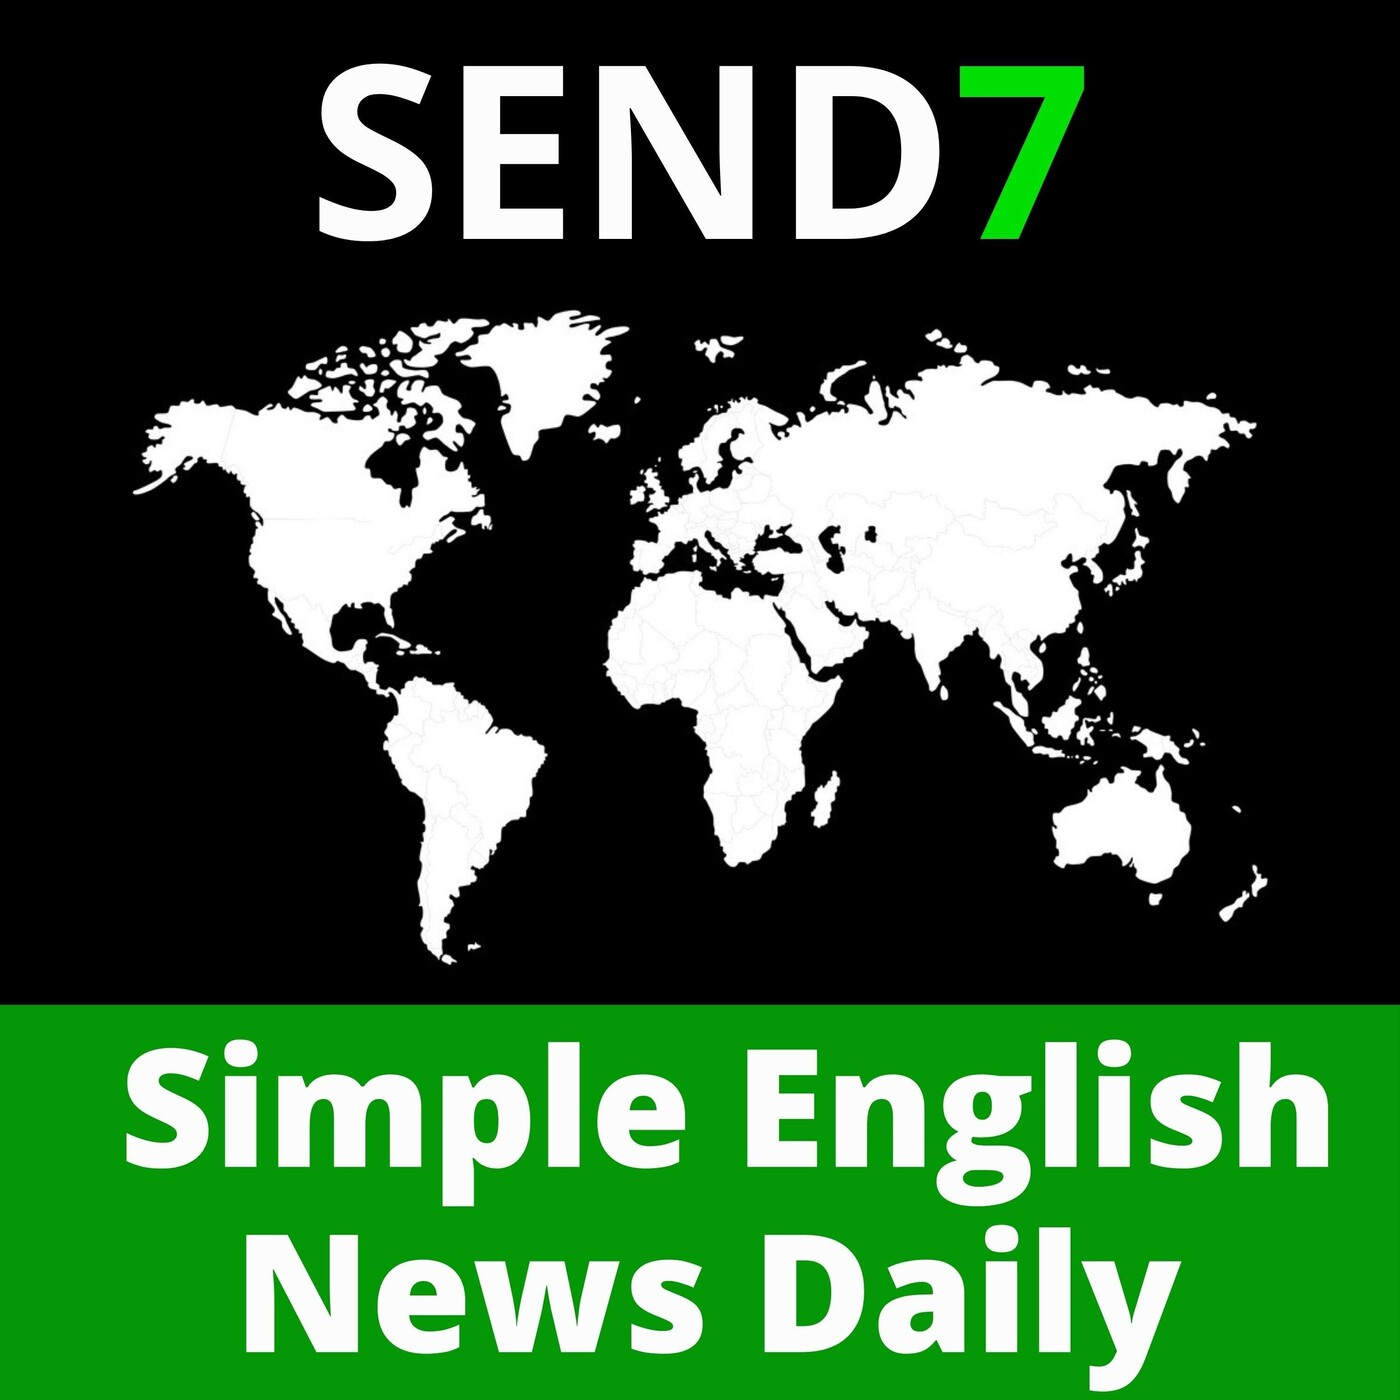 Wednesday 5th August 2020. World News. Today: Lebanon explosion kills many. Afghanistan prison attack. Malaysia inves...